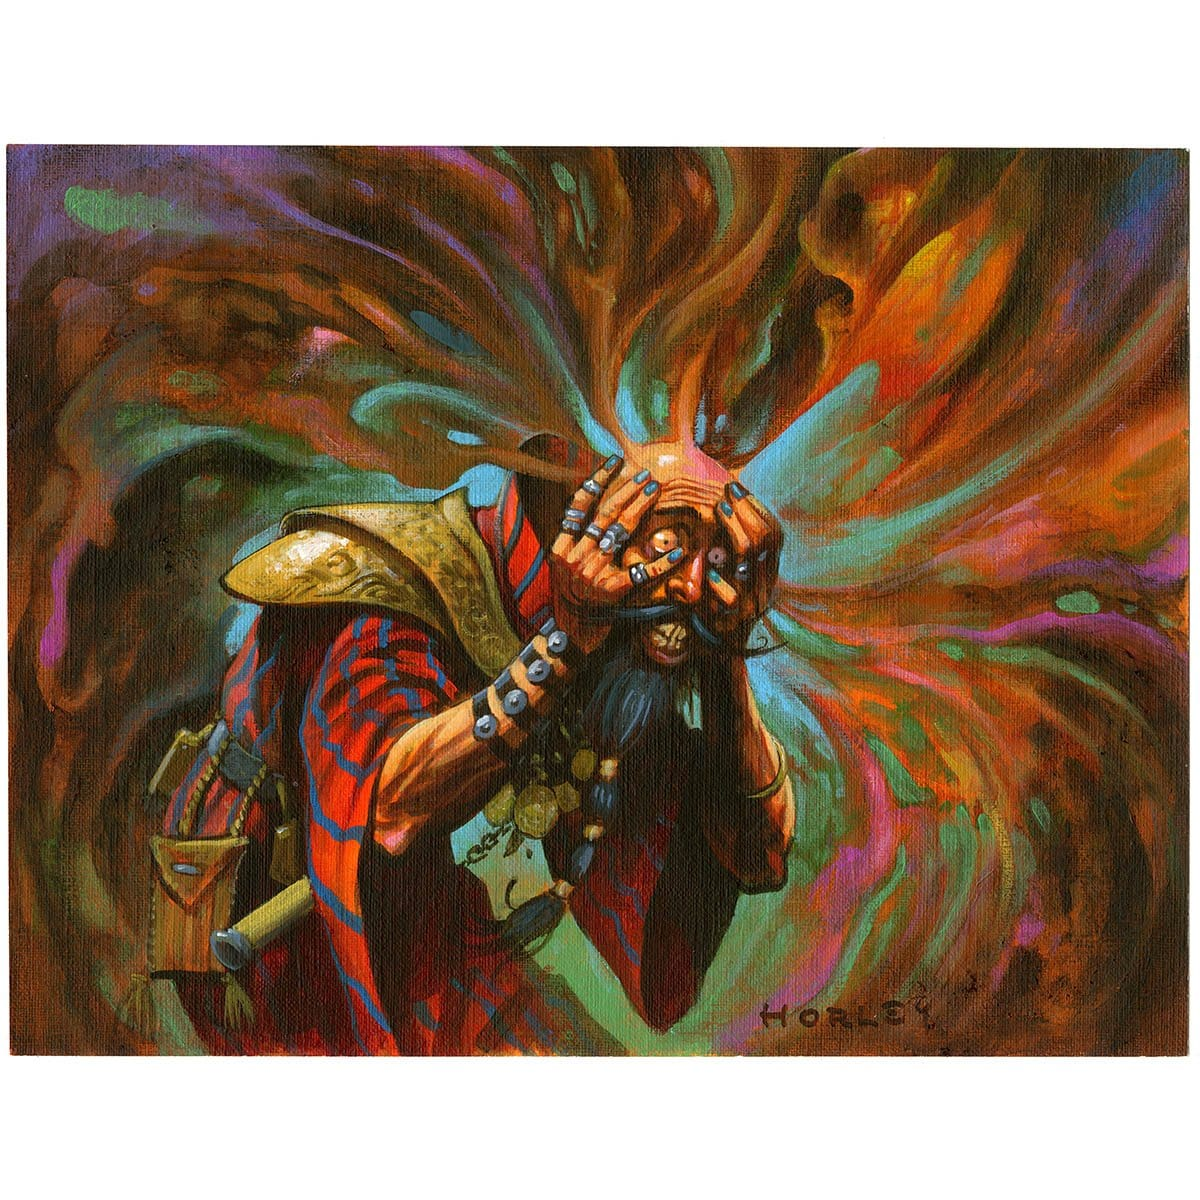 Mindmoil Print - Print - Original Magic Art - Accessories for Magic the Gathering and other card games